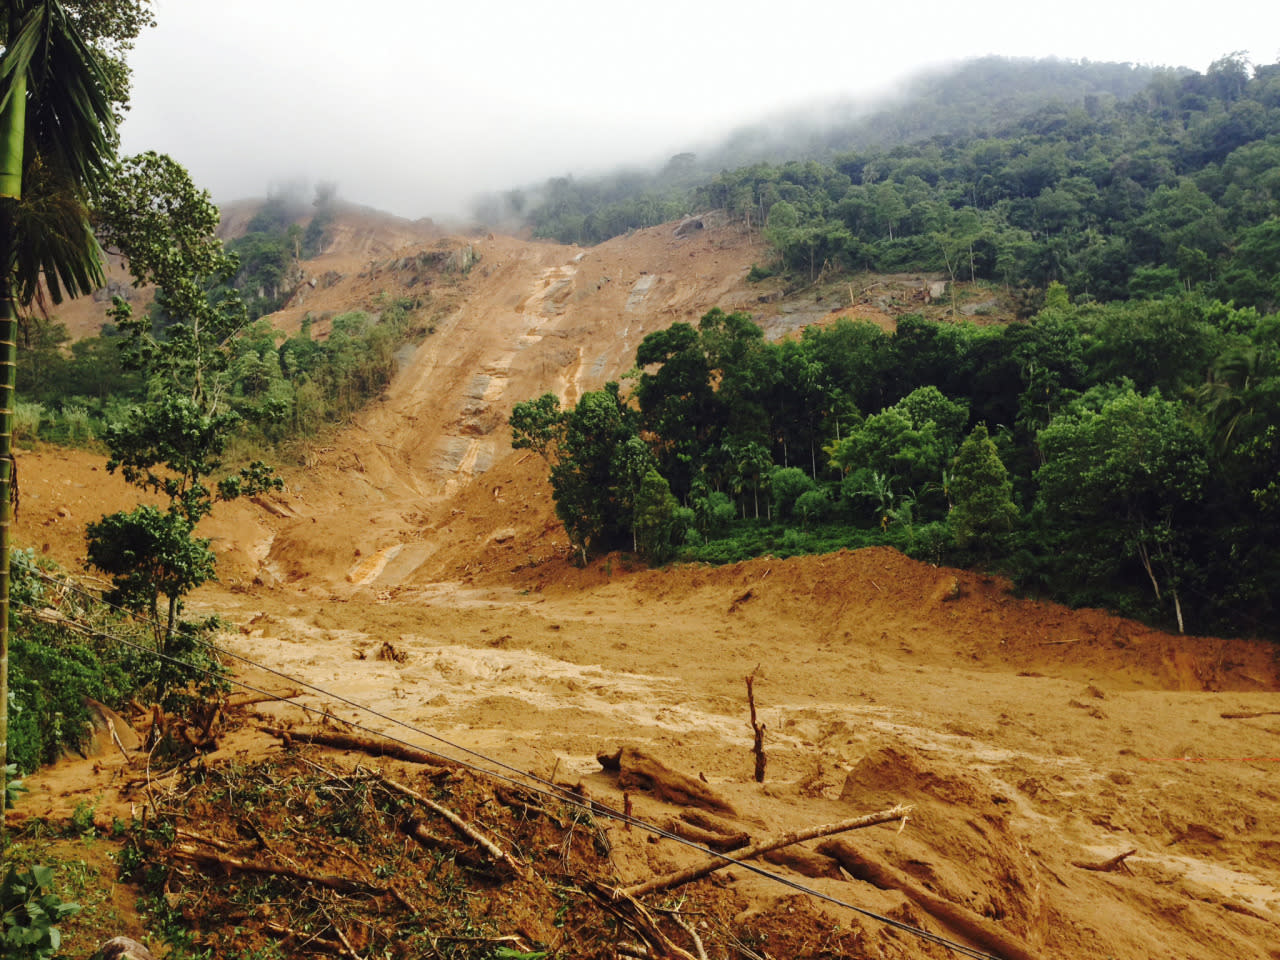 The scene after a massive landslide in Kegalle District, about 45 miles north of Colombo, Sri Lanka, May 18, 2016.(AP Photo/Eranga Jayawardena)